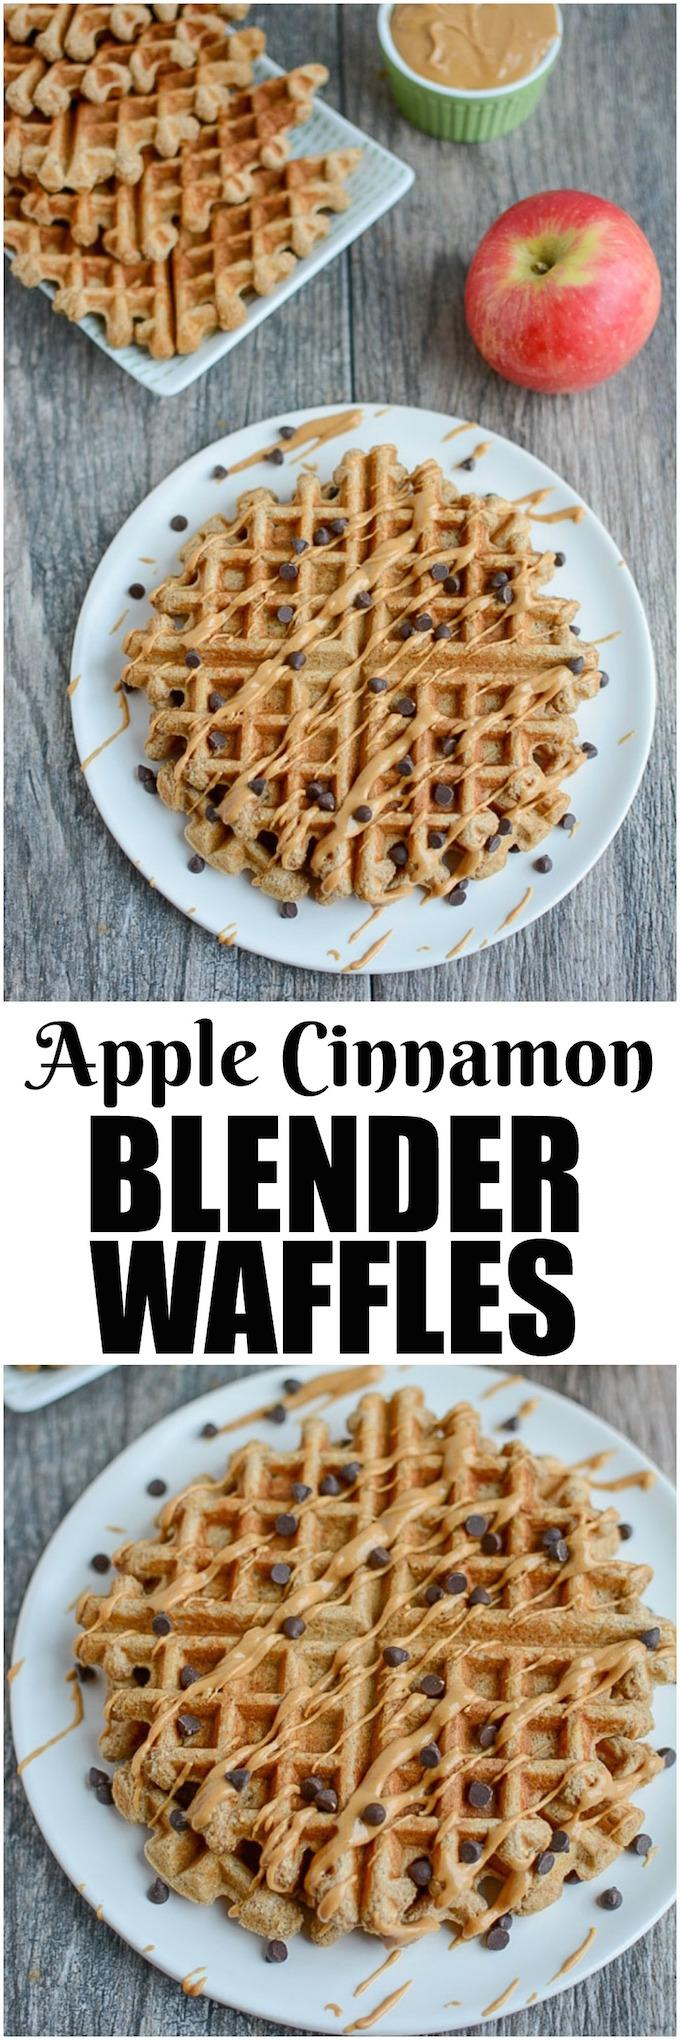 These Apple Cinnamon Blender Waffles are an easy, healthy breakfast option and also make a great afternoon snack!